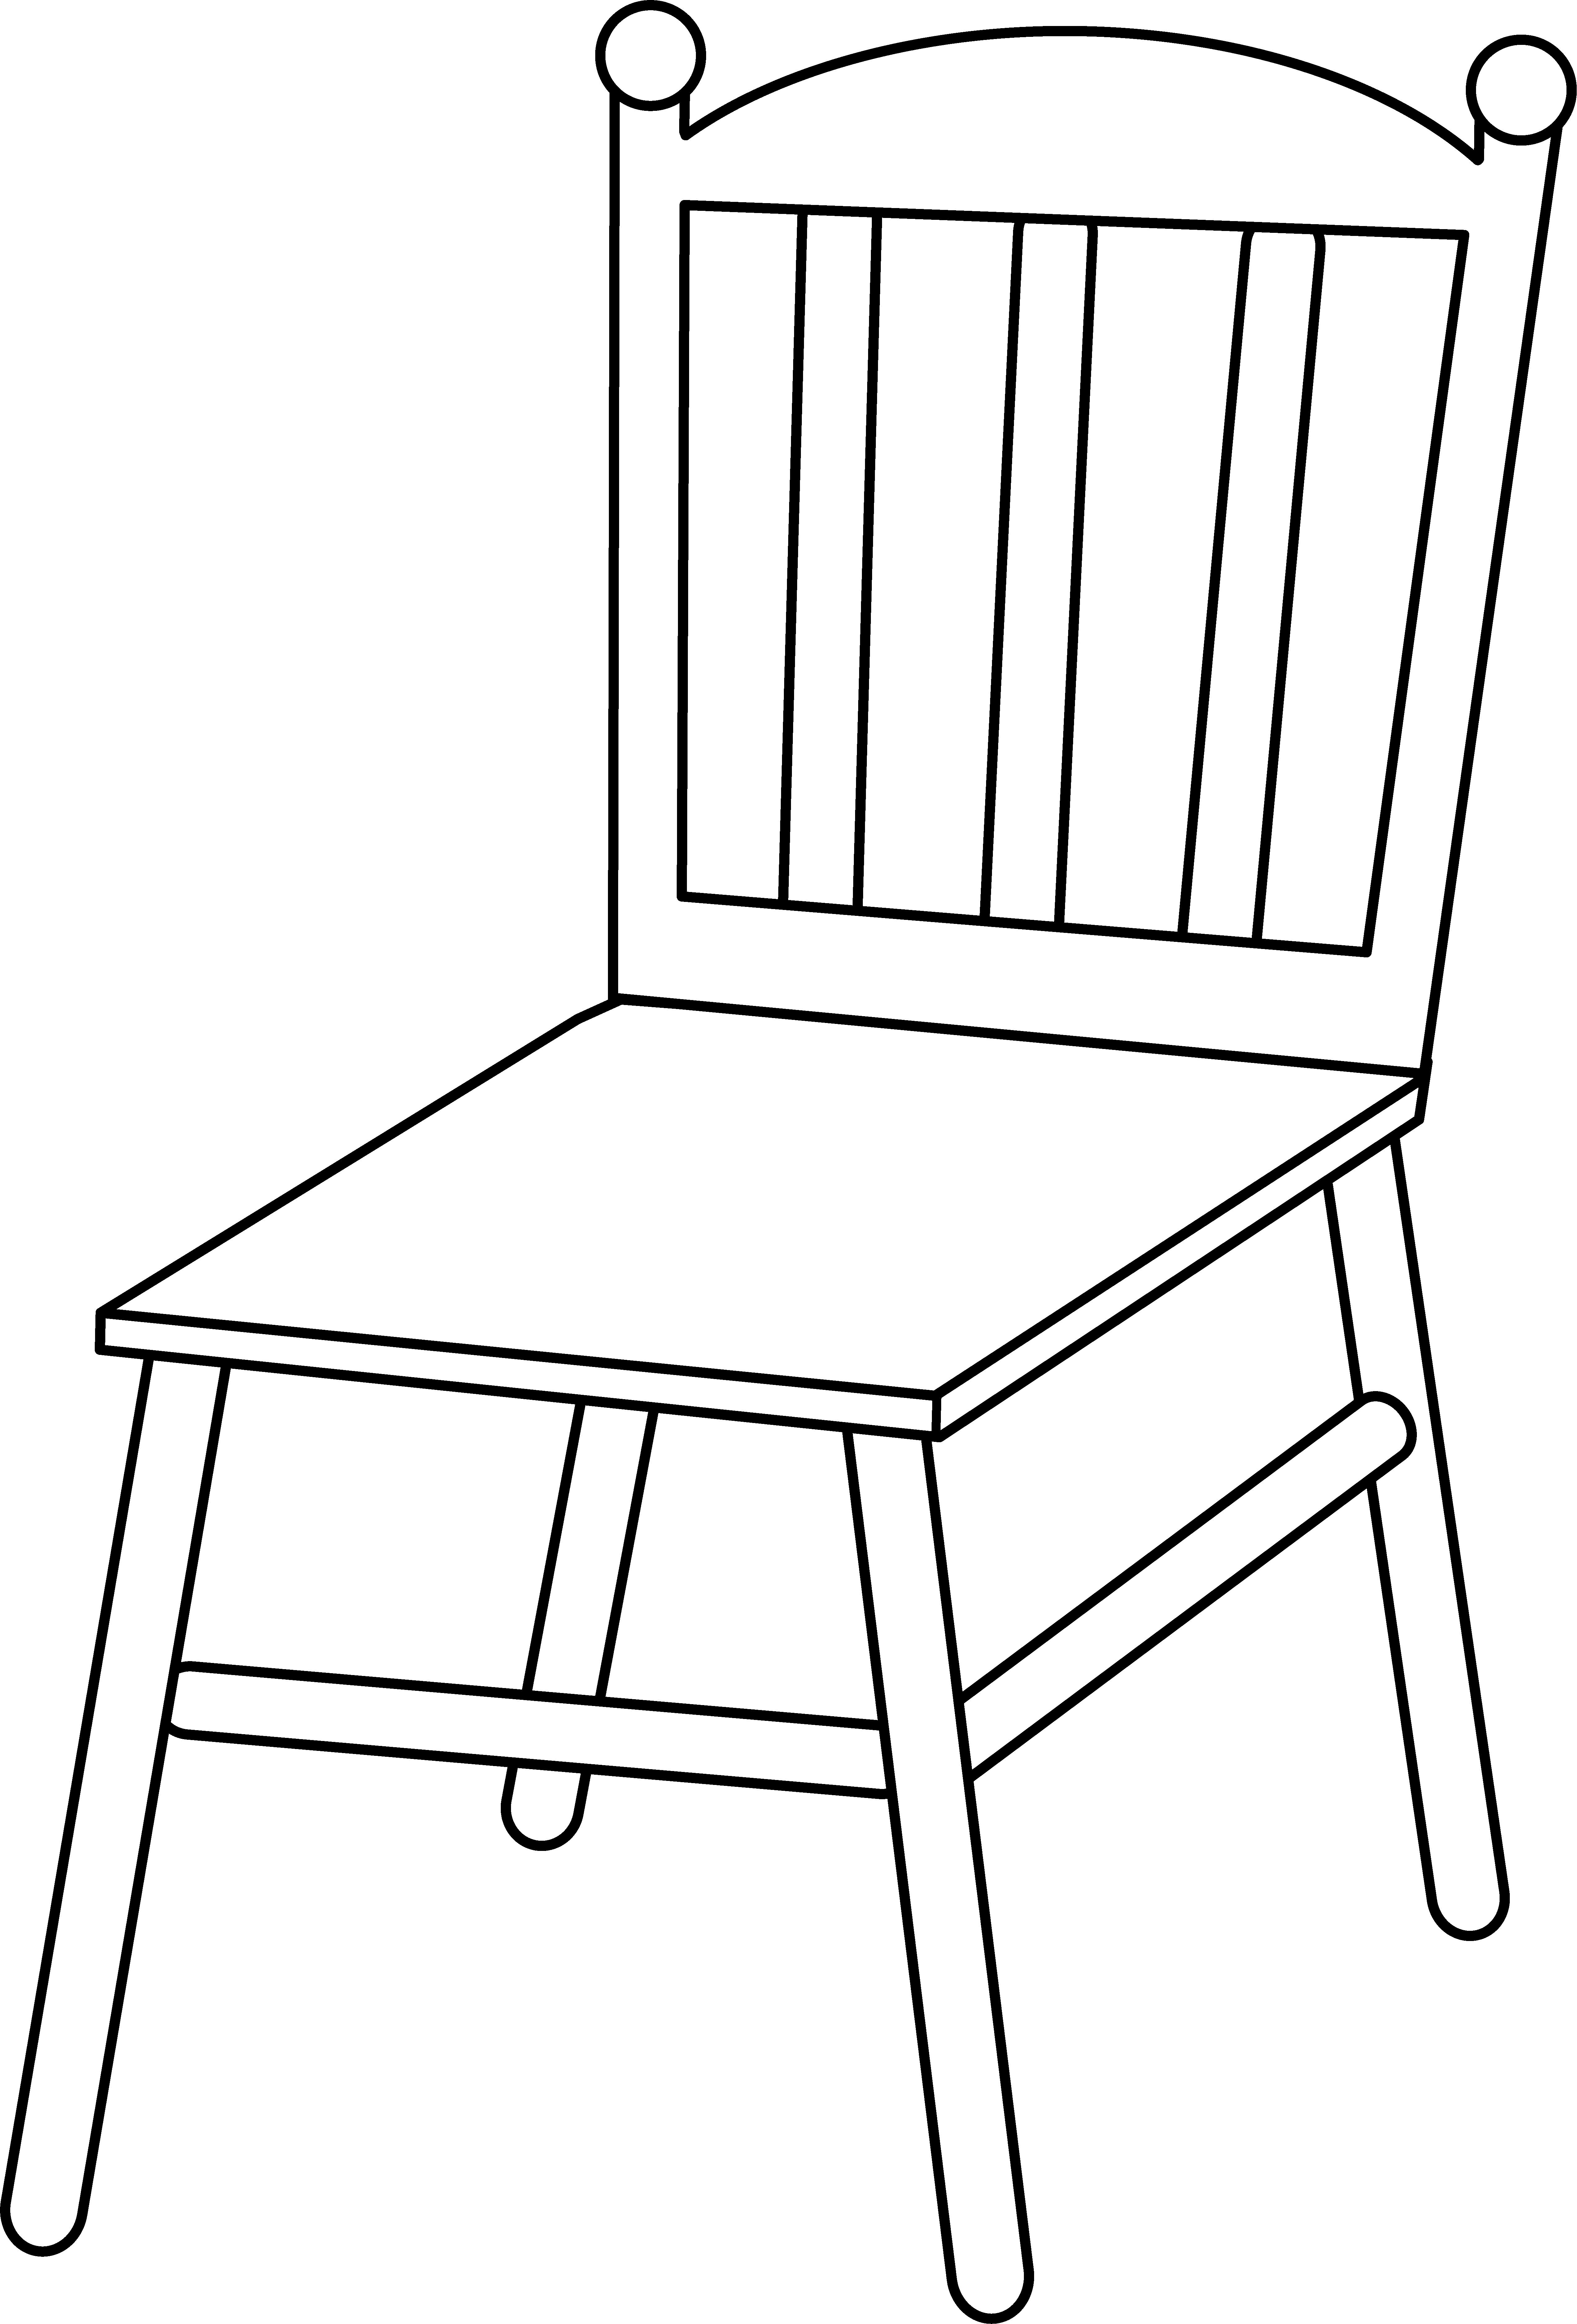 Furniture clipart line art Art and Chair Line Chair